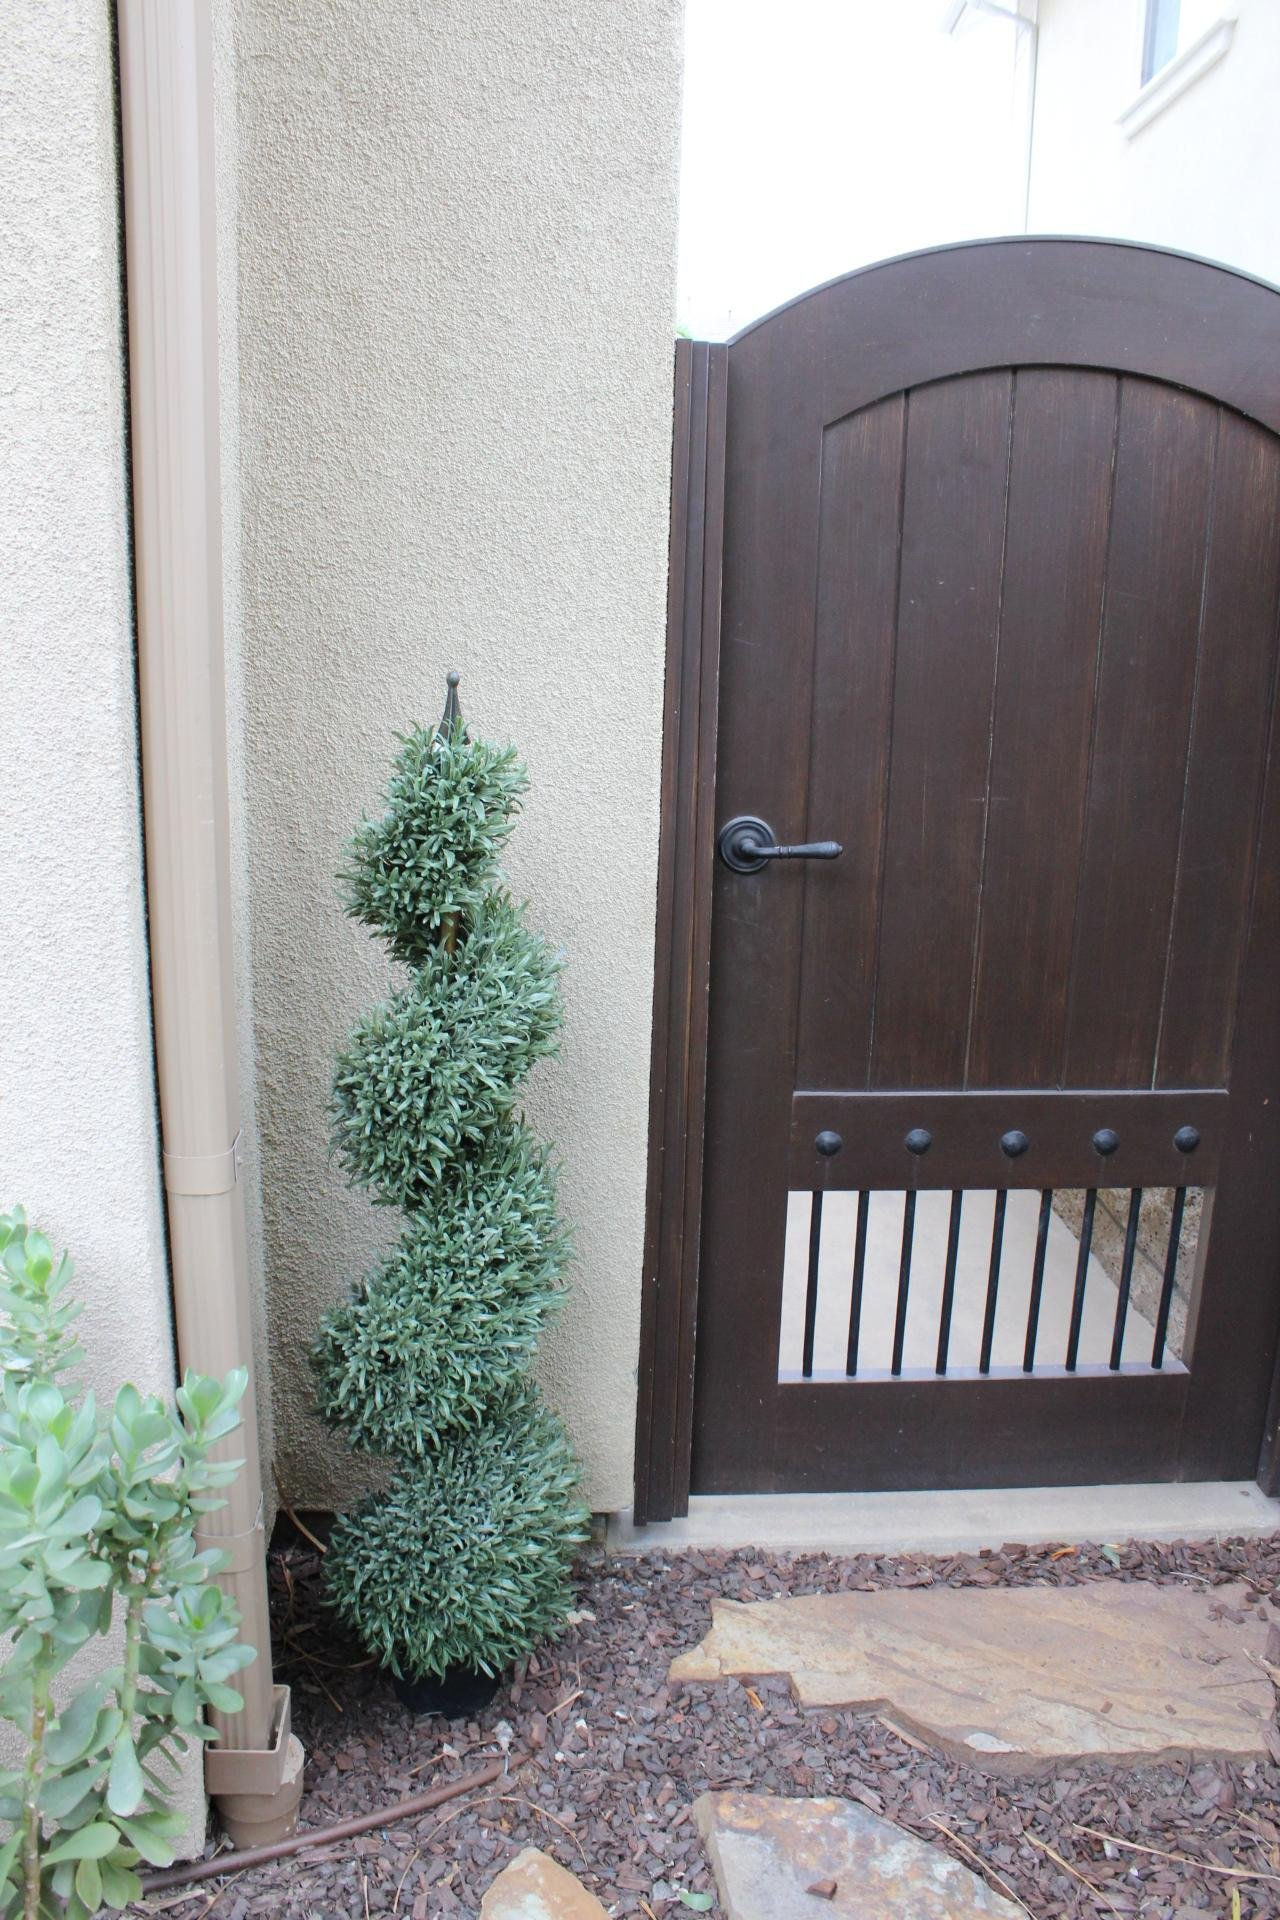 Rosemary Spiral Artificial Topiary Tree Pre Potted (4 Foot Twin Pack) by Silk Road Home